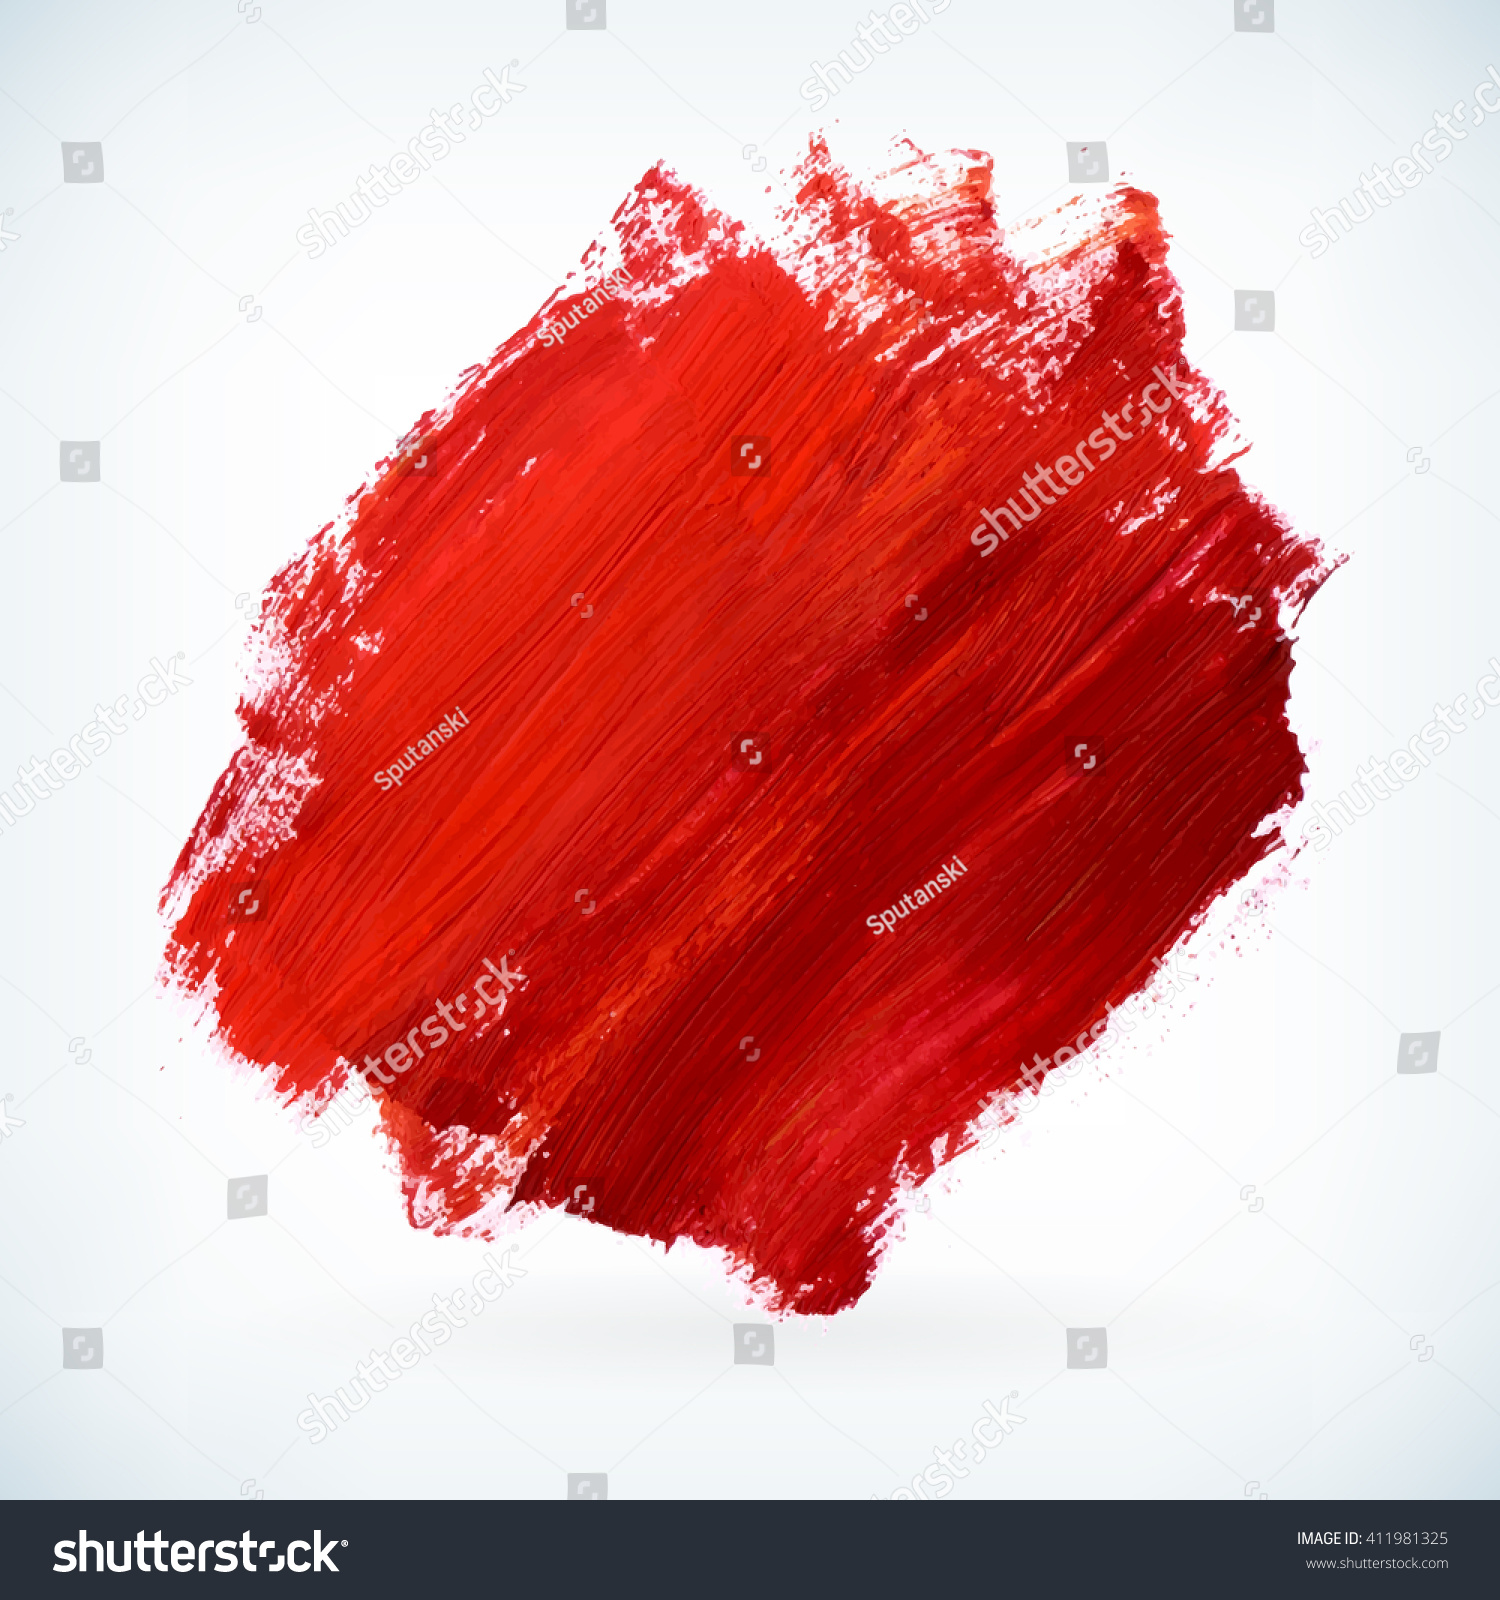 Red Paint red paint artistic dry brush stroke stock vector 411981325